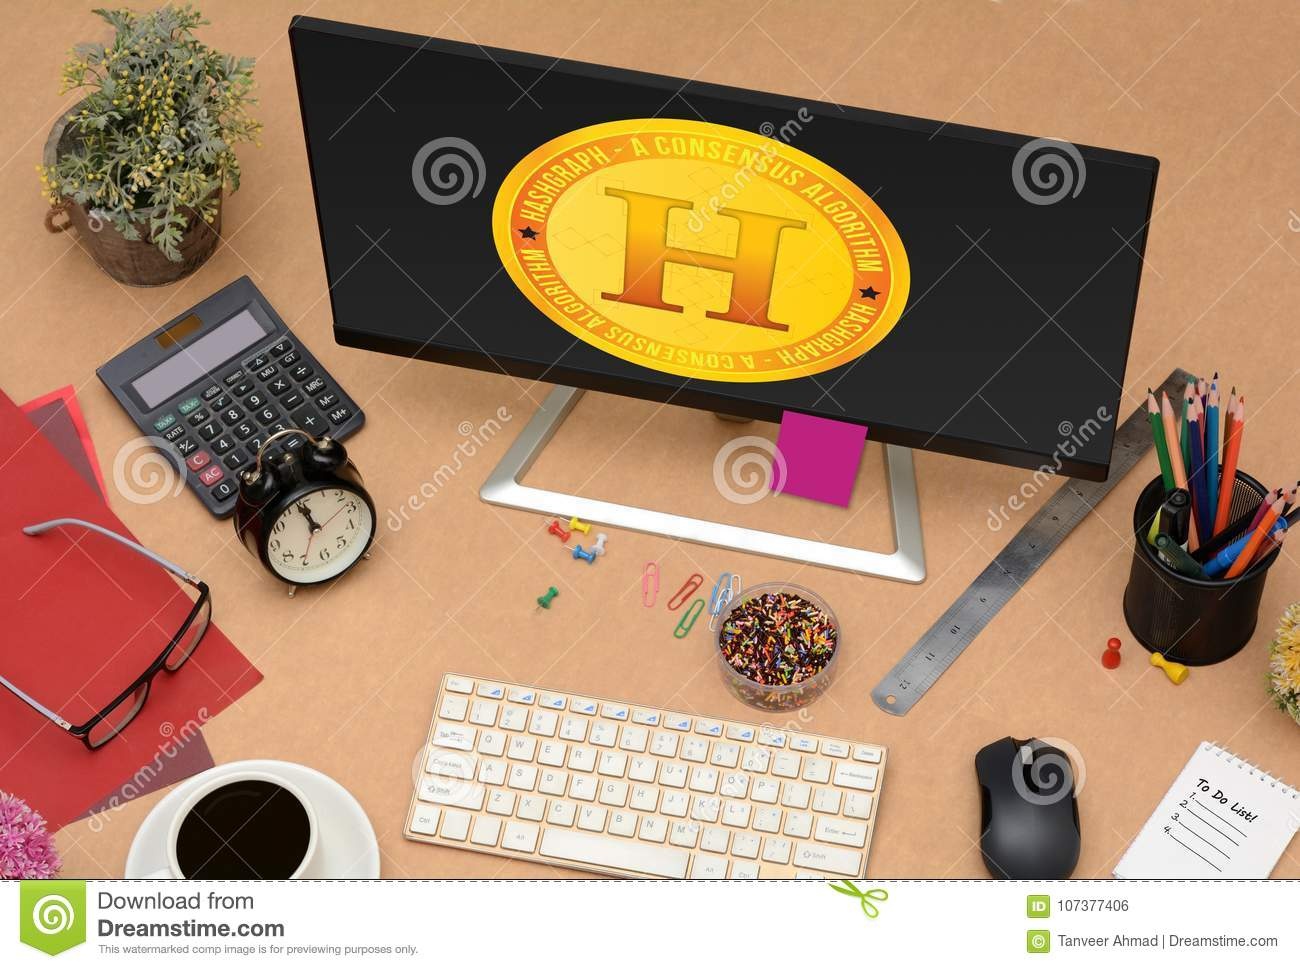 New Hashgraph Coin Design On Computer Screen Stock Photo - Image of